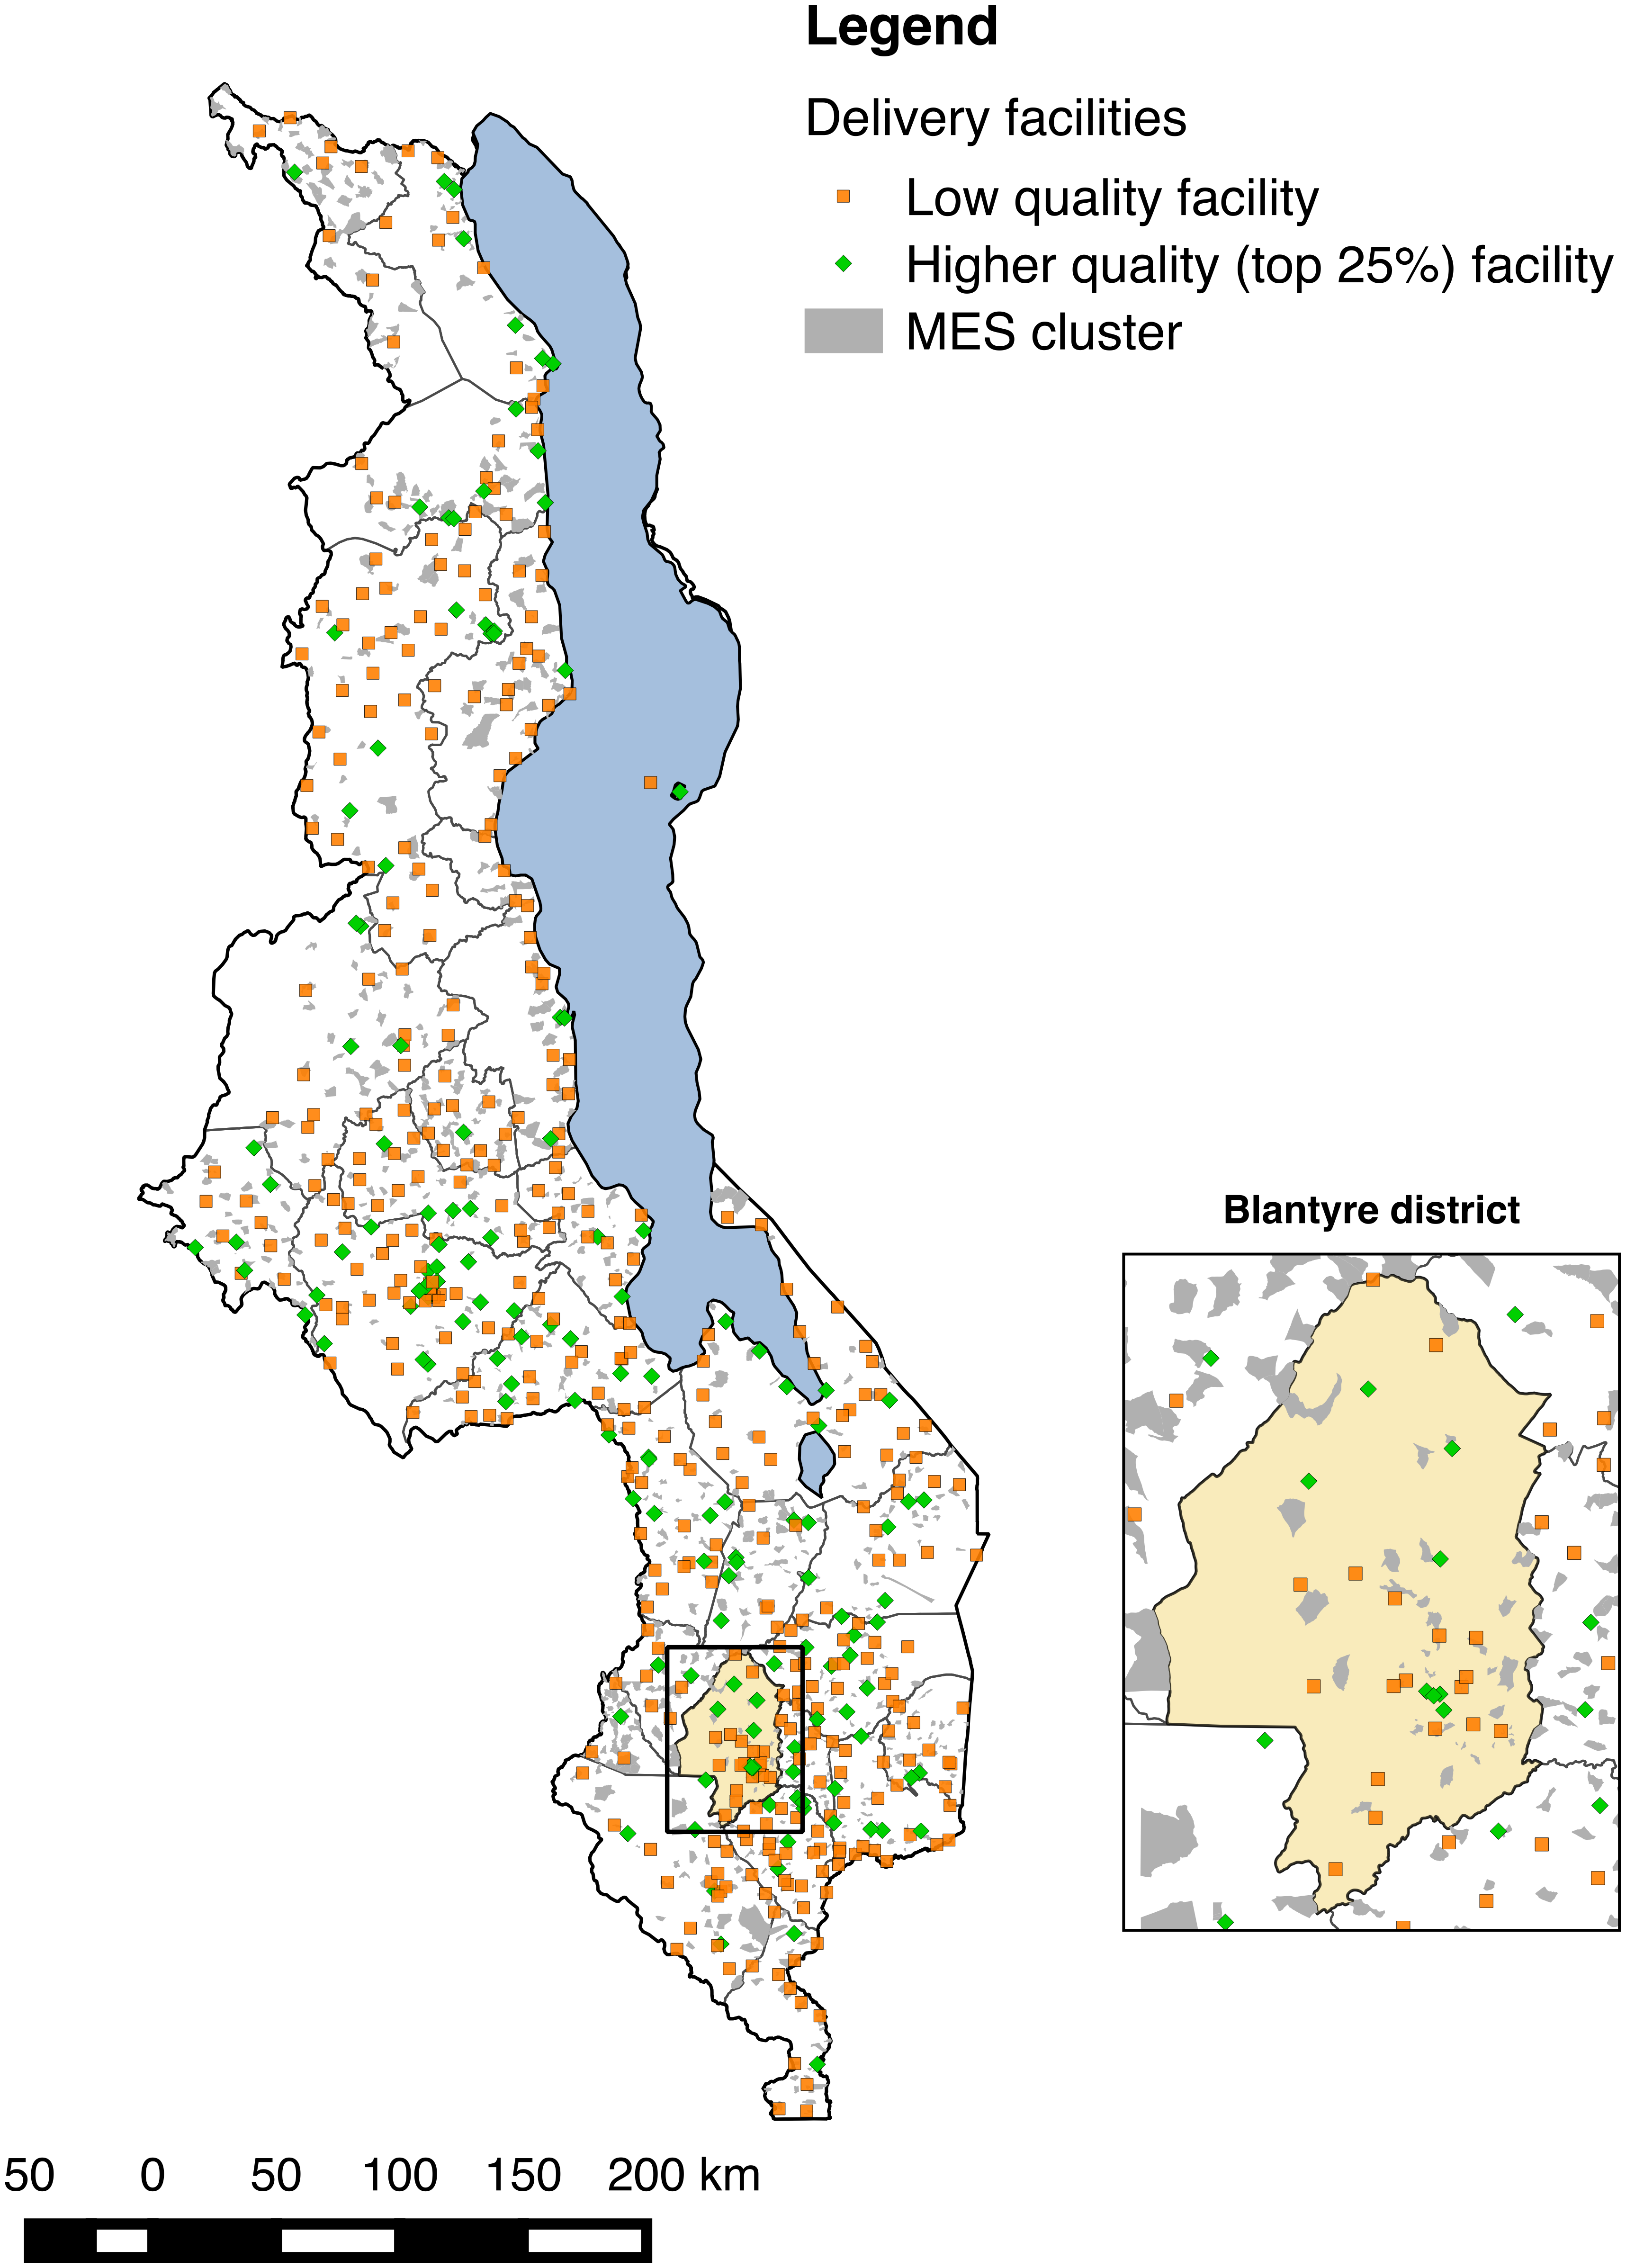 Distribution of health facilities in Malawi relative to MES enumeration areas and magnification of Blantyre district and city.